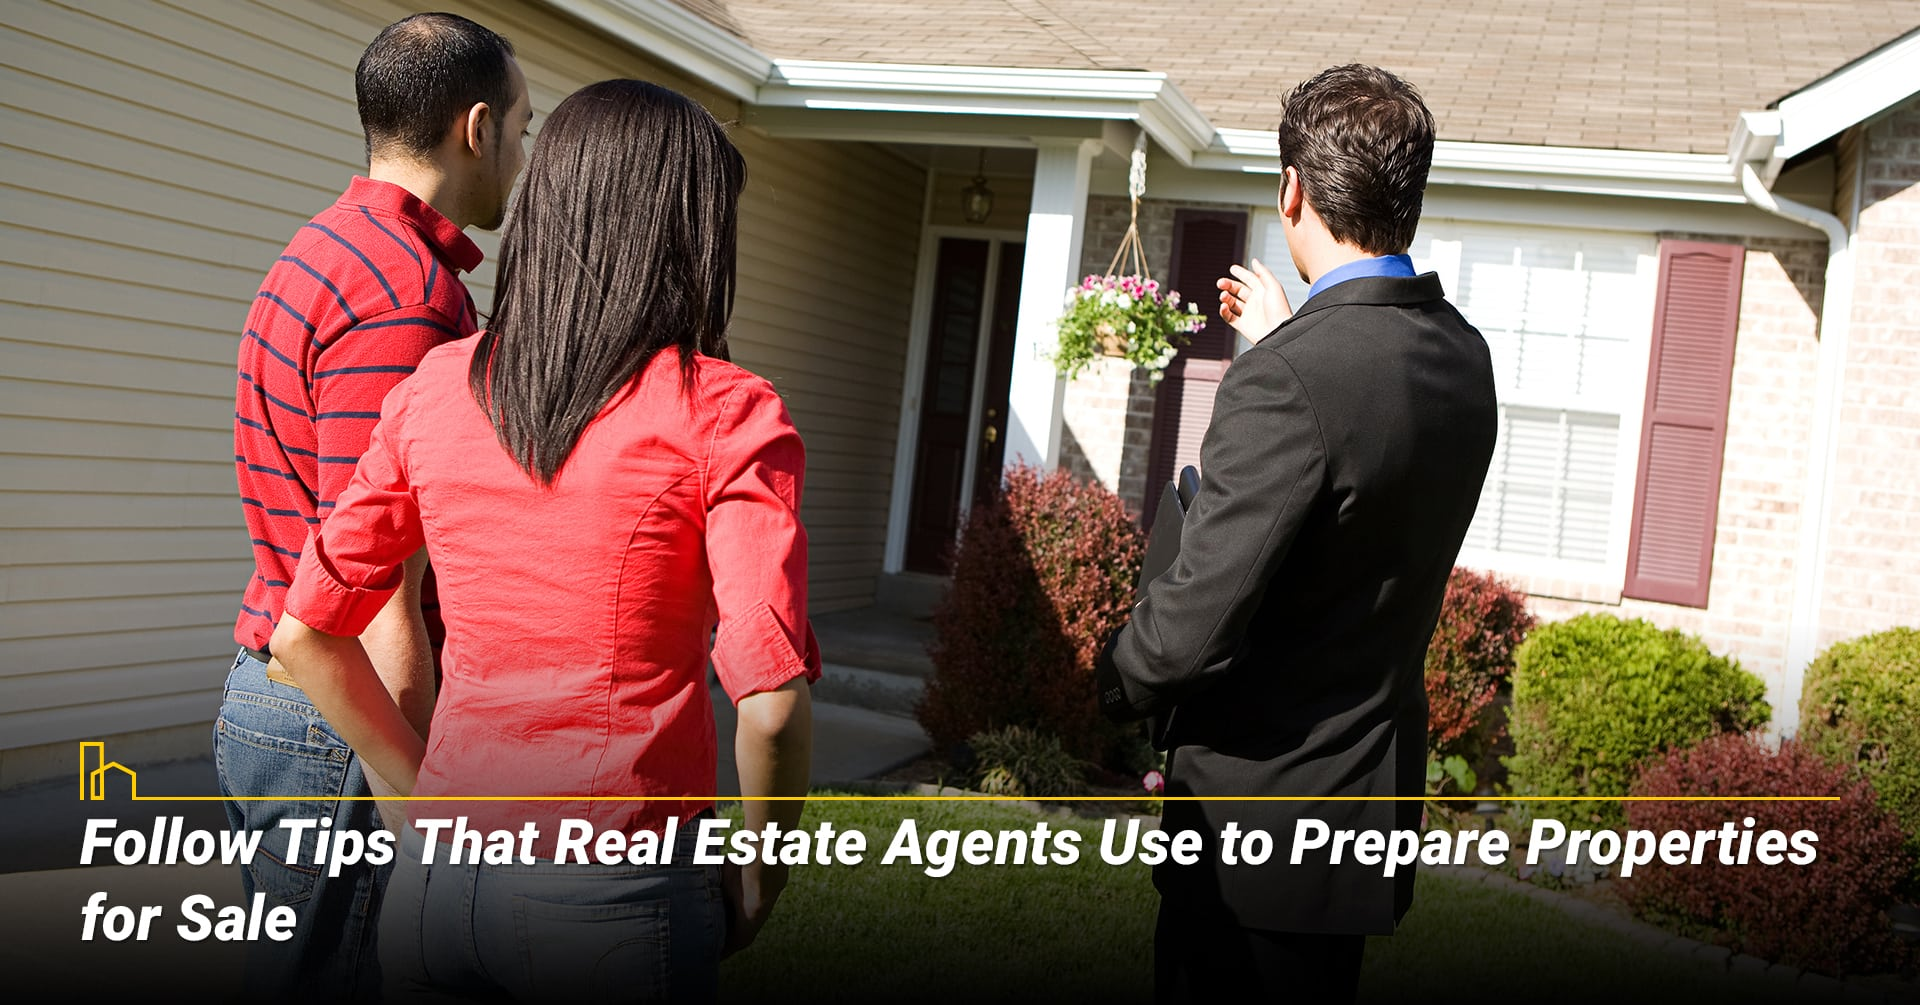 Follow Tips That Real Estate Agents Use to Prepare Properties for Sale, take your agent's advice